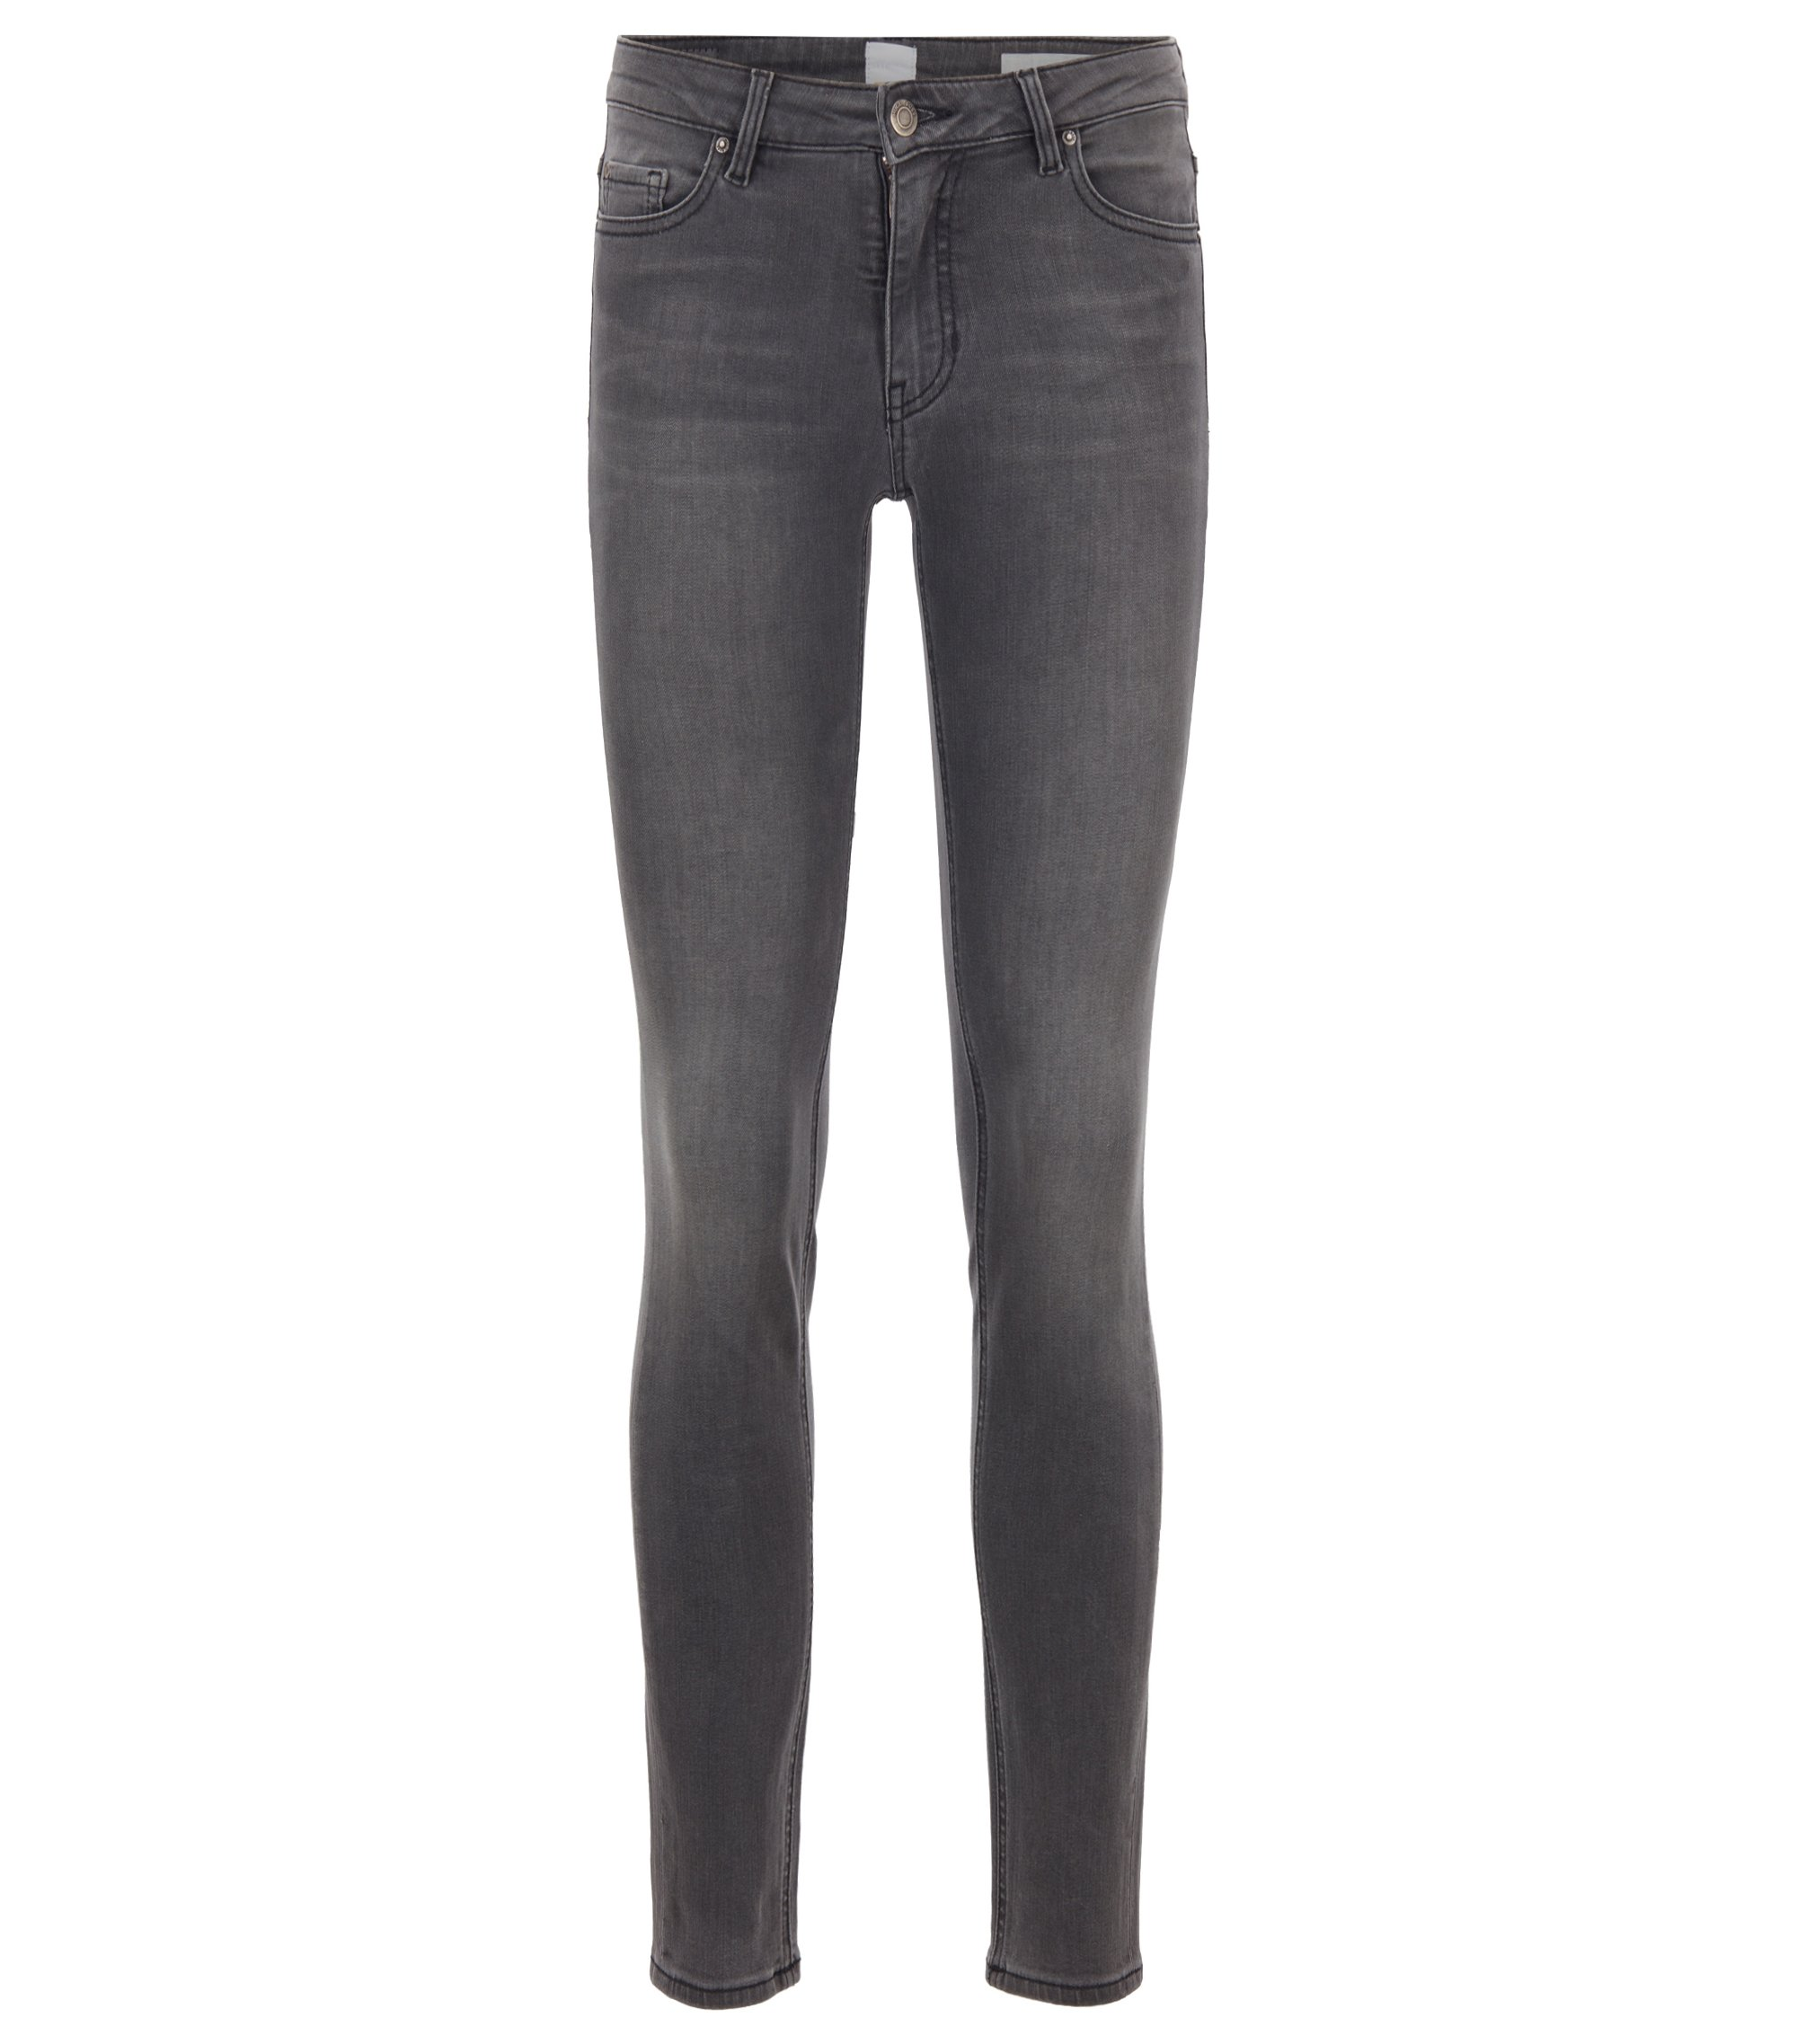 Jean Slim Fit en denim power stretch gris anthracite, Gris